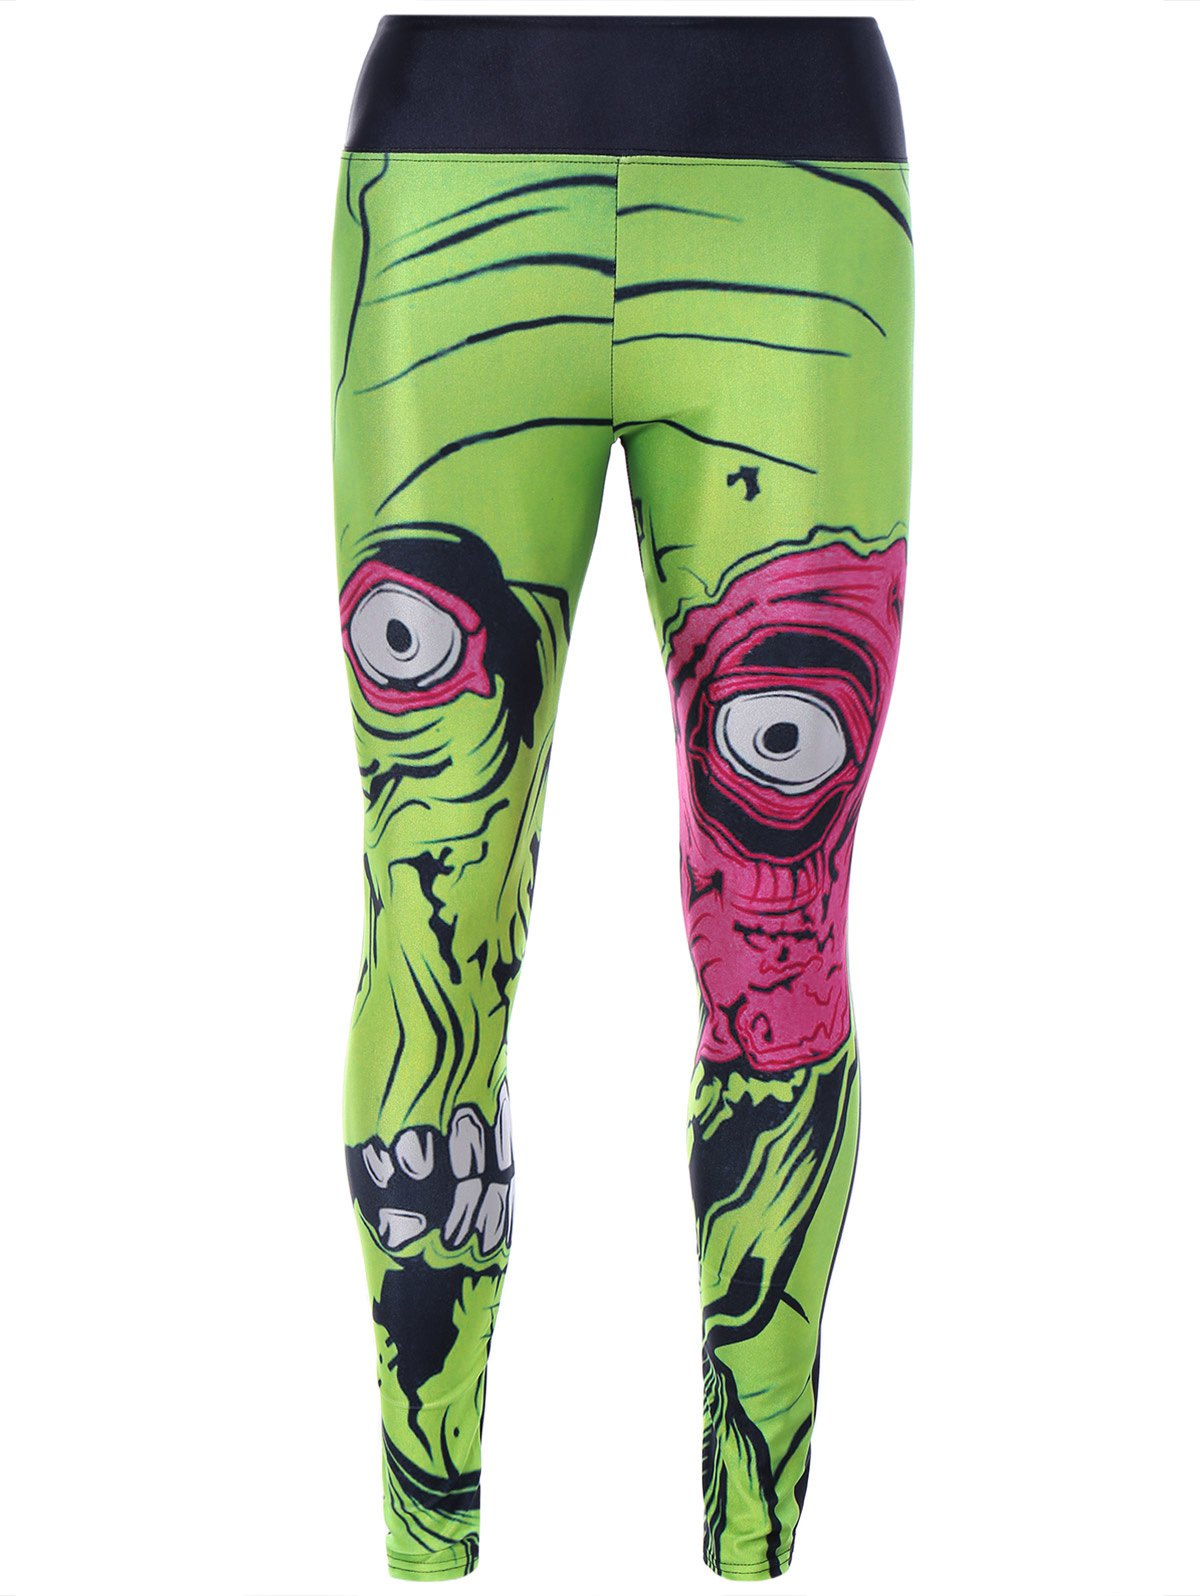 3D Green Monster Print Skinny Sporty Leggings